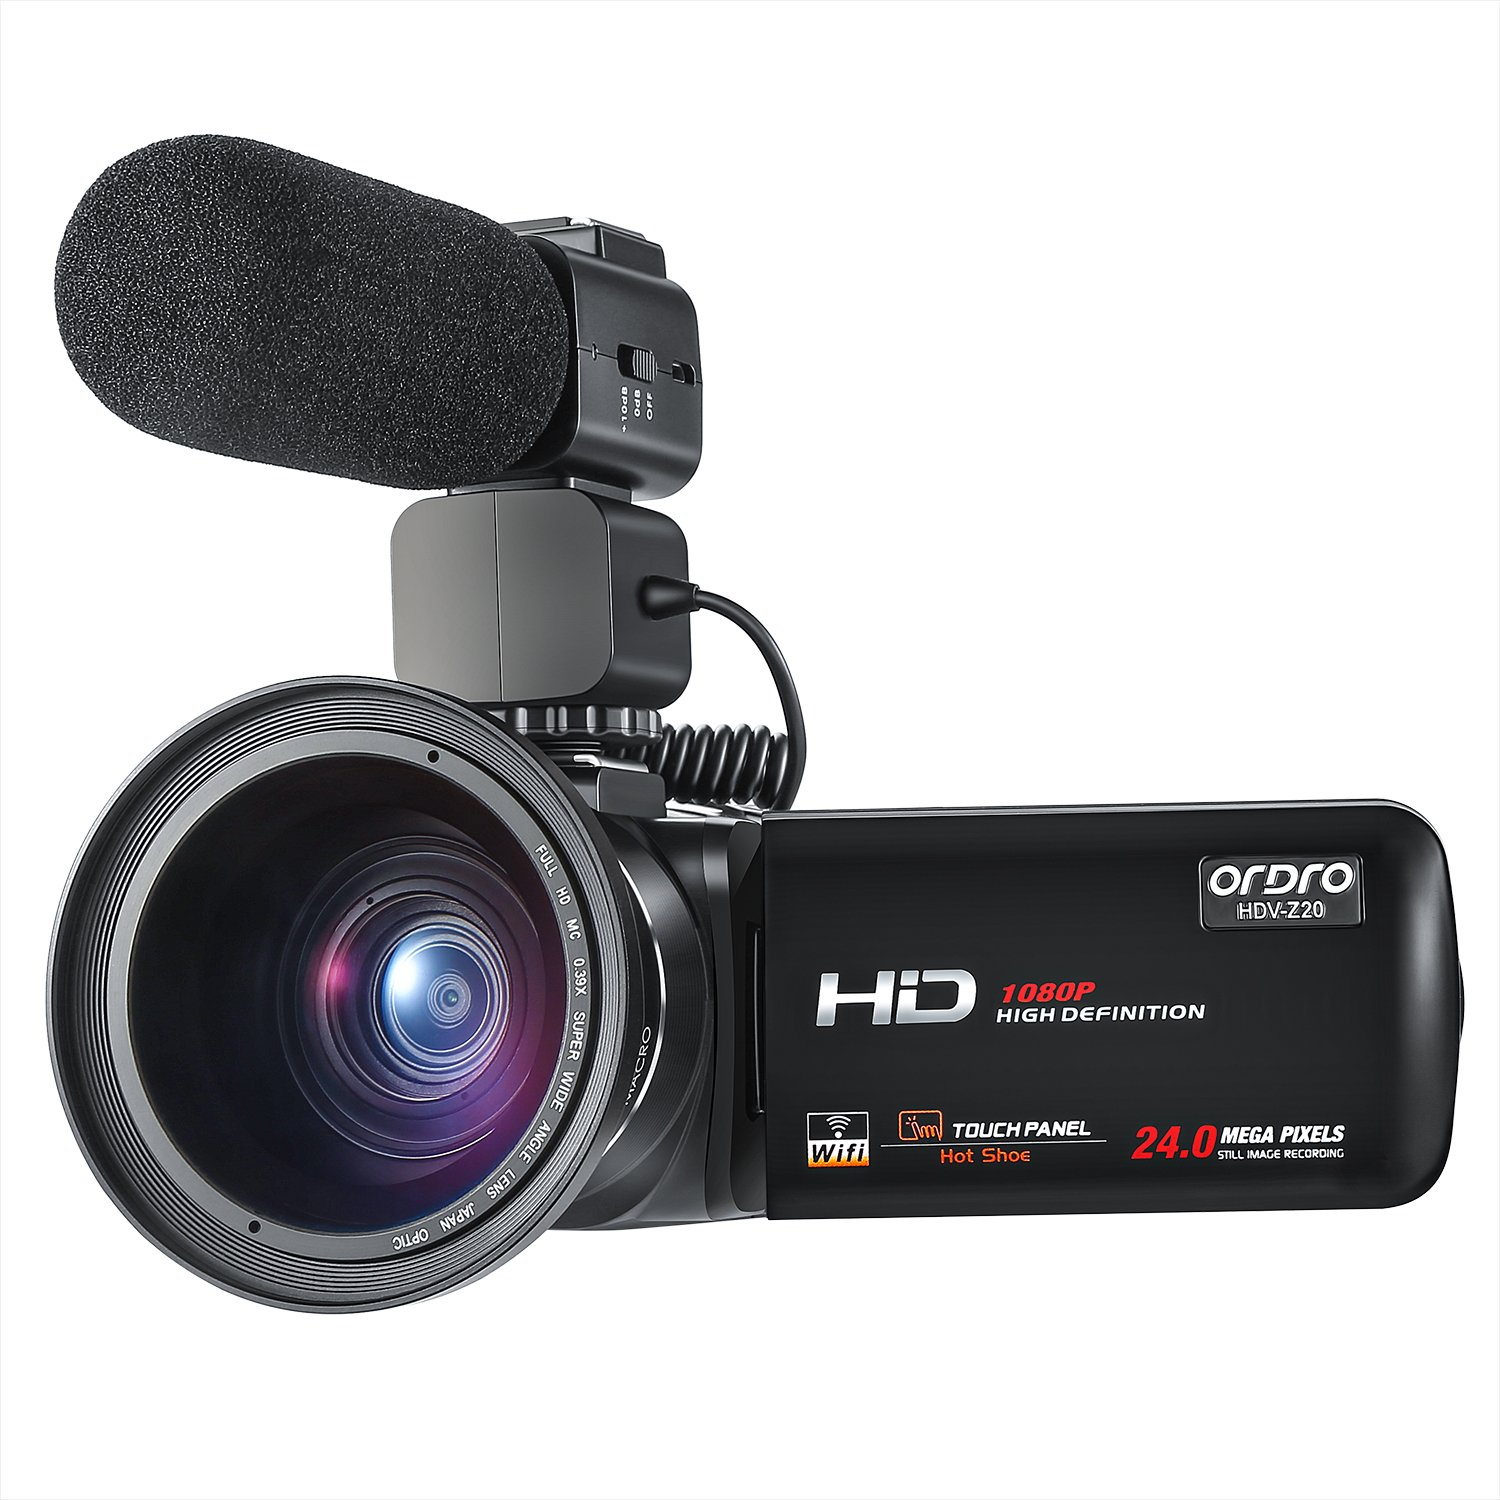 ORDRO Camcorder 1080P Full HD Video Camera with Wifi External Microphone Wide Angle Lens (HDV-Z20)